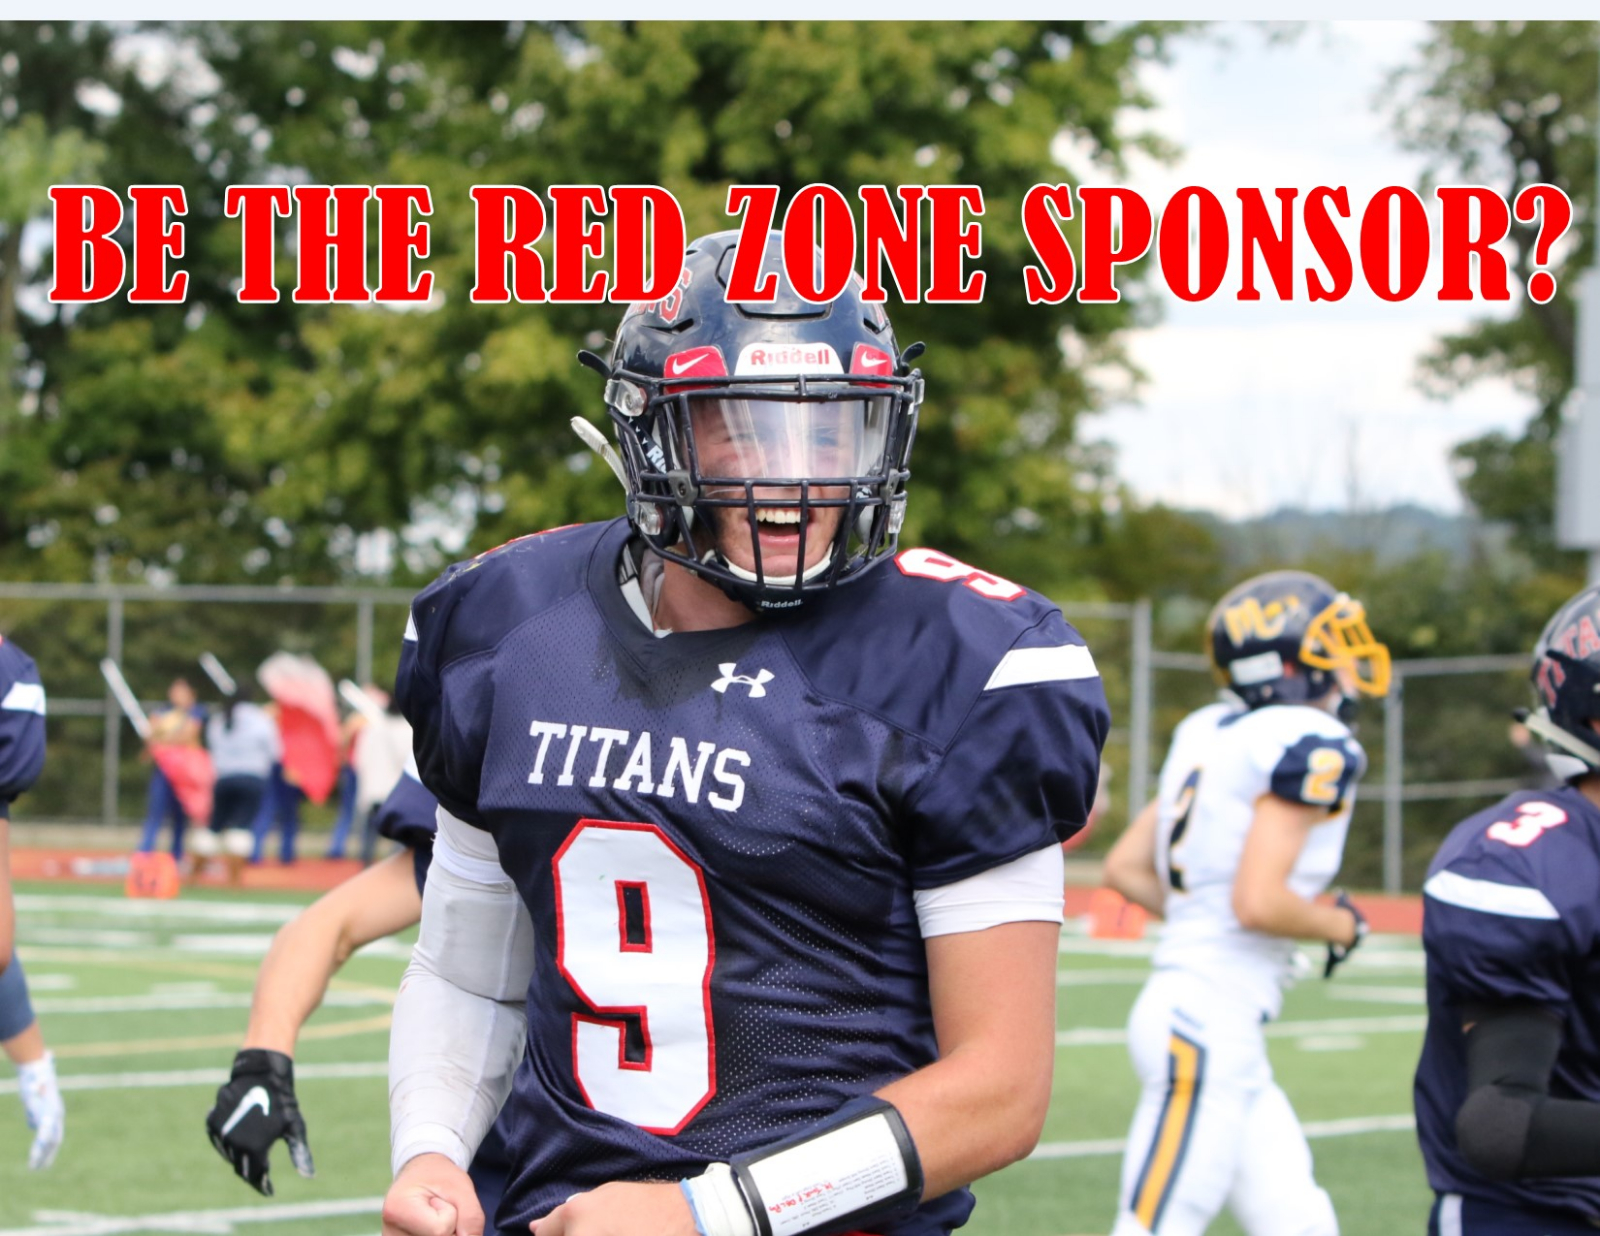 RED ZONE OPPORTUNITY